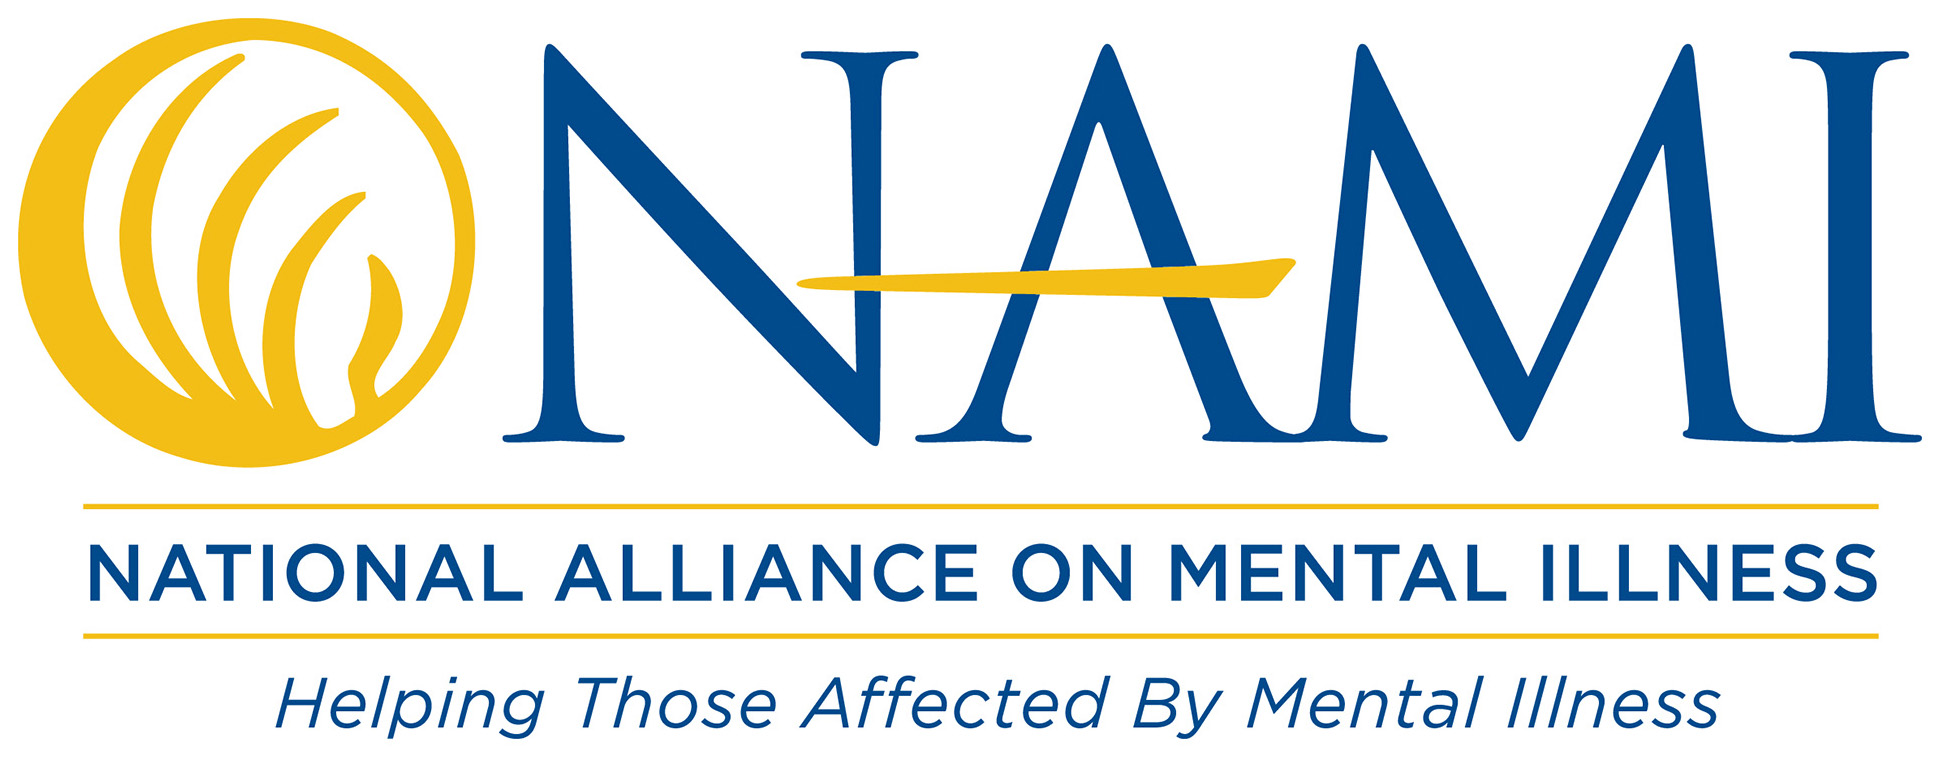 National Alliance on Mental Illness - I have a severe mental illness. I am an enthusiastic supporter of NAMI.